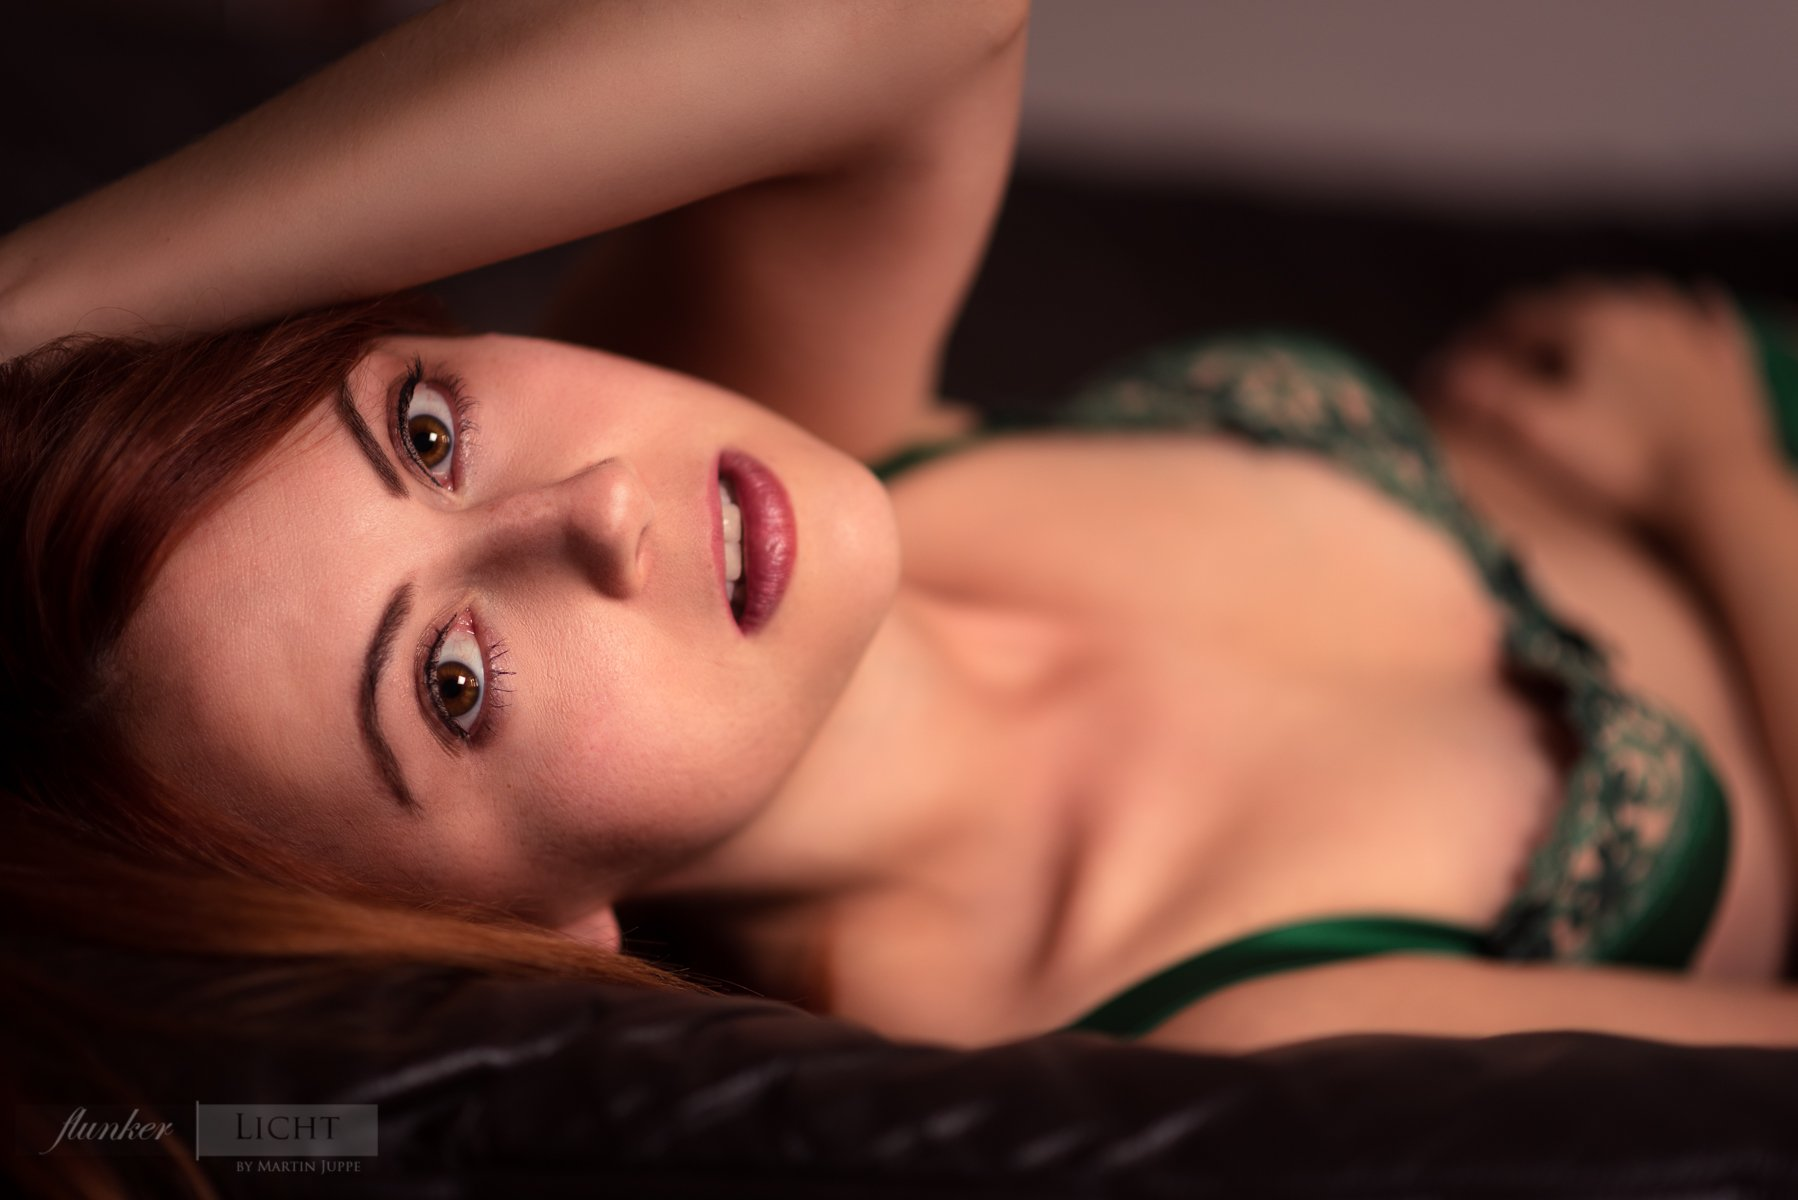 Portait, Wien, zuhause, Amateurmodel, kein Model, Lingerie, Unterwäsche, Dessous, TfP-Shooting